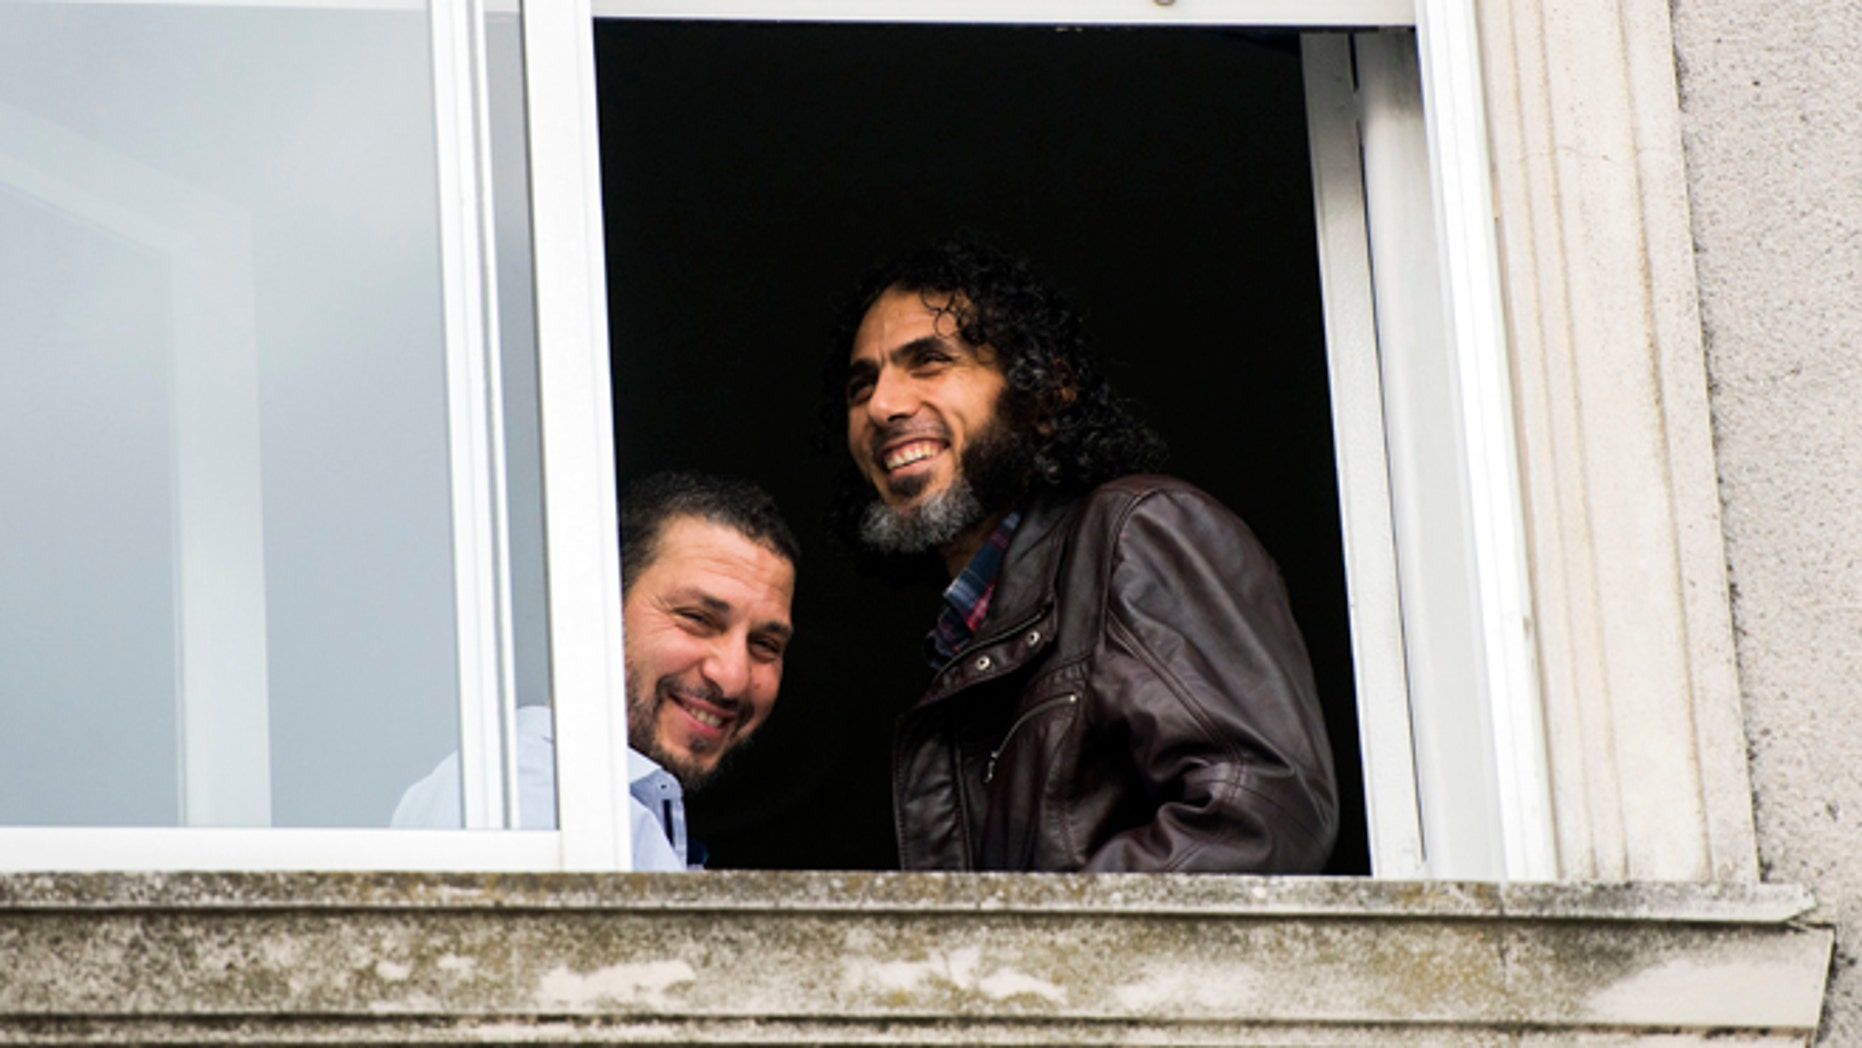 Abu Wa'el Dhiab, from Syria, right, and Adel bin Muhammad El Ouerghi, of Tunisia, both freed Guantanamo Bay detainees.